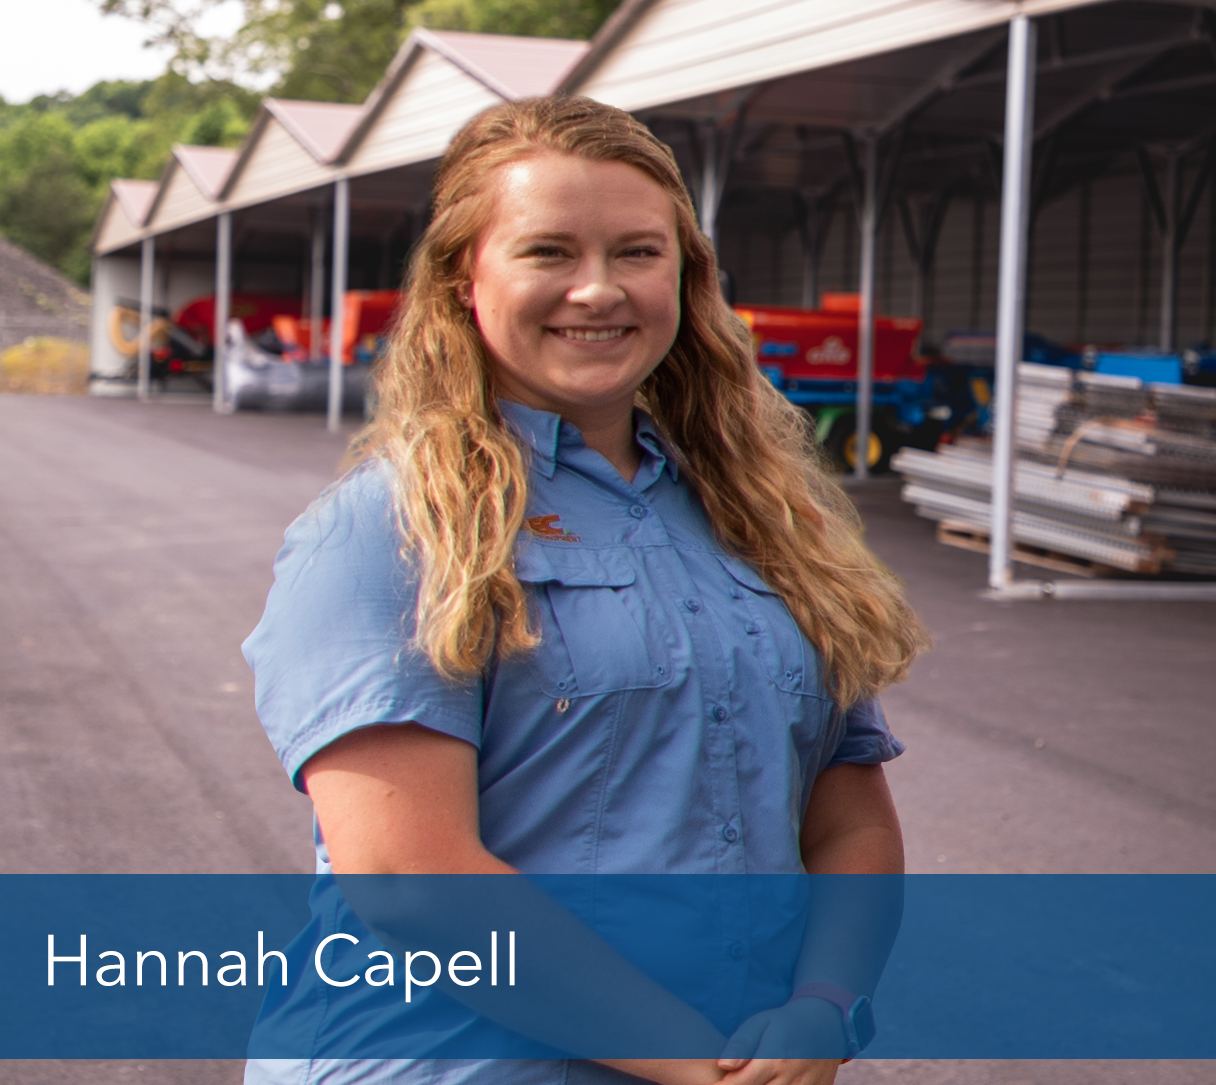 "<b>Hannah Capell</b>, Office Manager <br><p></p>      Hannah ""keeps"" the office moving, organized and on task, helping everyone at STEC be more efficient and effective in their pursuits.<p></p>       Hannah was born and raised on a beautiful farm in Pendleton SC and was heavily involved in the FFA while growing up. After graduating with a BS Degree from Anderson University in Financial Economics, she worked briefly in the banking industry before finding her ""new home"" at STEC Equipment.<p></p>      In her spare time Hannah enjoys hiking, camping & spending time on the family farm. With this passion for the outdoors, she has found the perfect pairing to expand her love of photography. Hannah has a date set in late in 2020 to wed her sweetheart, Luke. Hannah has been meticulously planning this long awaited special day and cannot wait to share it with their family and friends.<p></p>      ""Making sure each customer that walks through the door or calls in is greeted with respect is something that Hannah takes great pride in. If they have a question or concern, she will make sure they get an answer or will find someone who can answer their question. Customer service can be something that is taken for granted, but Hannah takes great pride her role as Office Manager.<p></p> ""Opportunity is missed by most people because it is dressed in overalls and looks like work.""<br> – Thomas Edison"